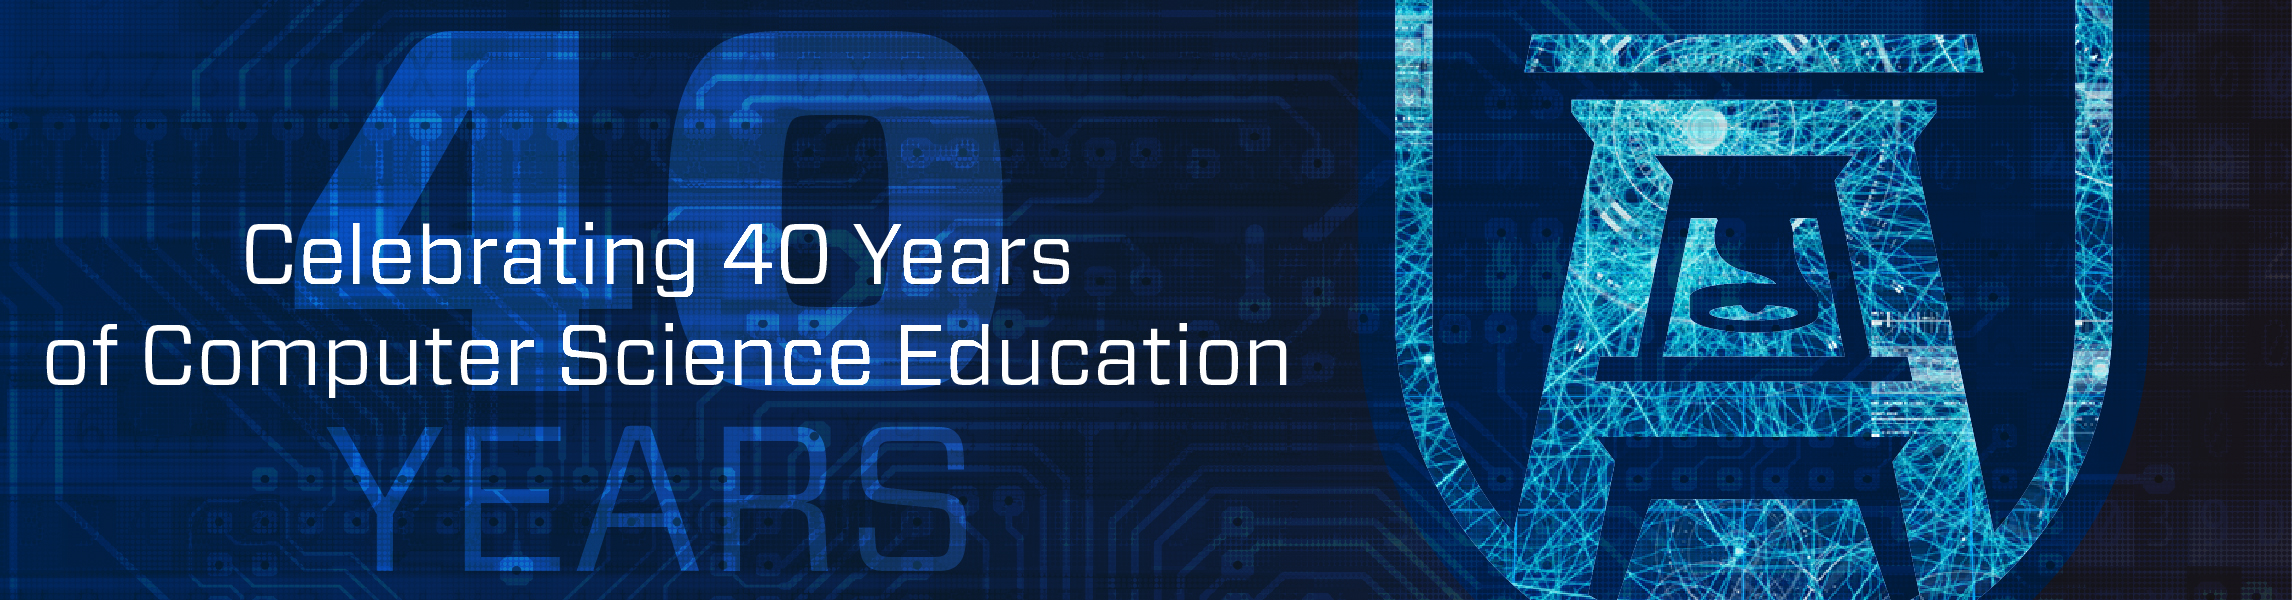 Celebrating 40 Years of Computer Science Education